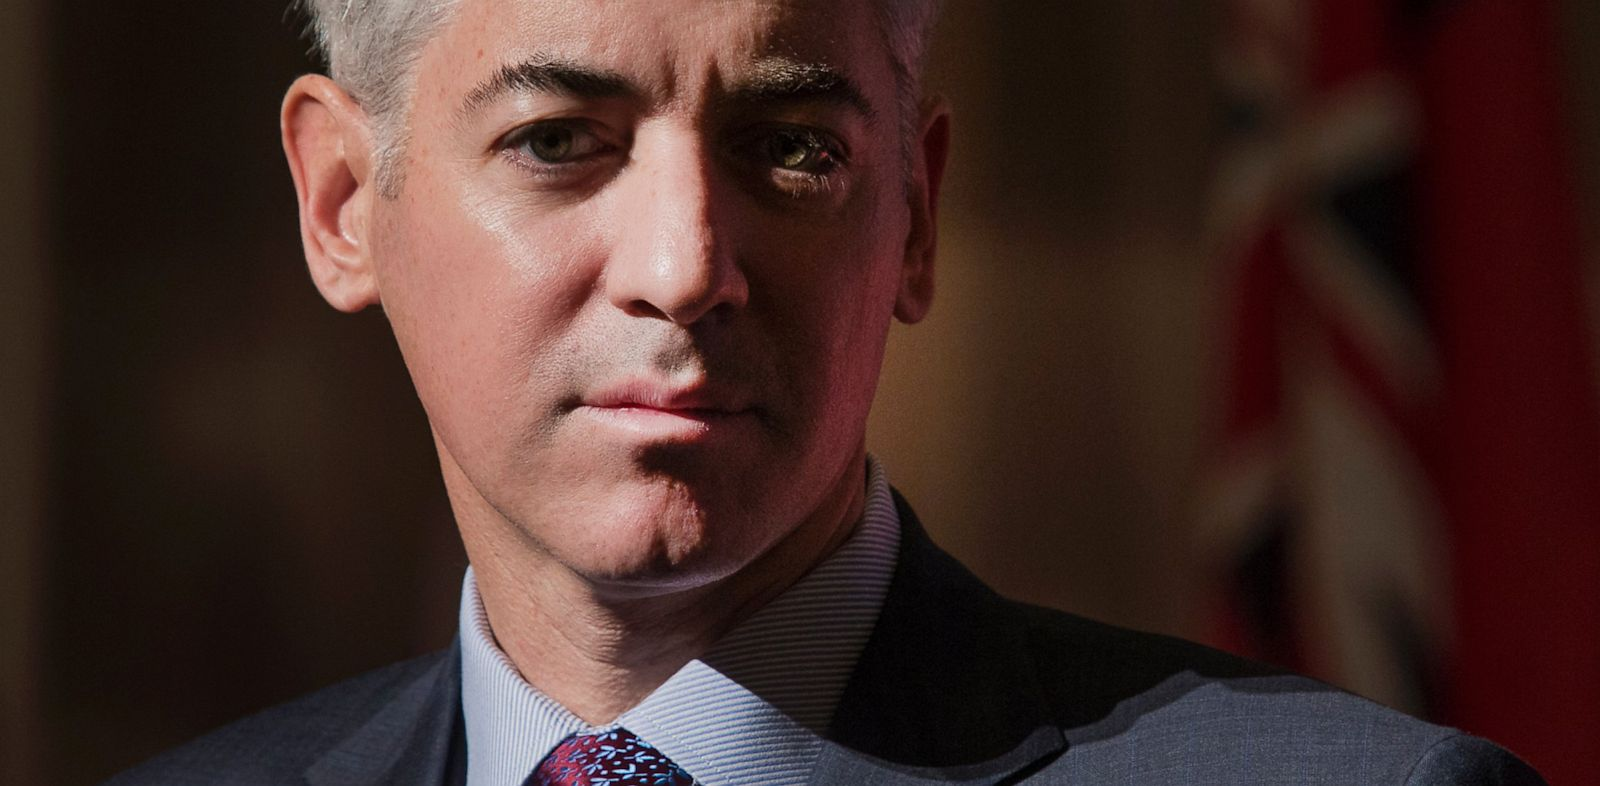 PHOTO: William Ackman